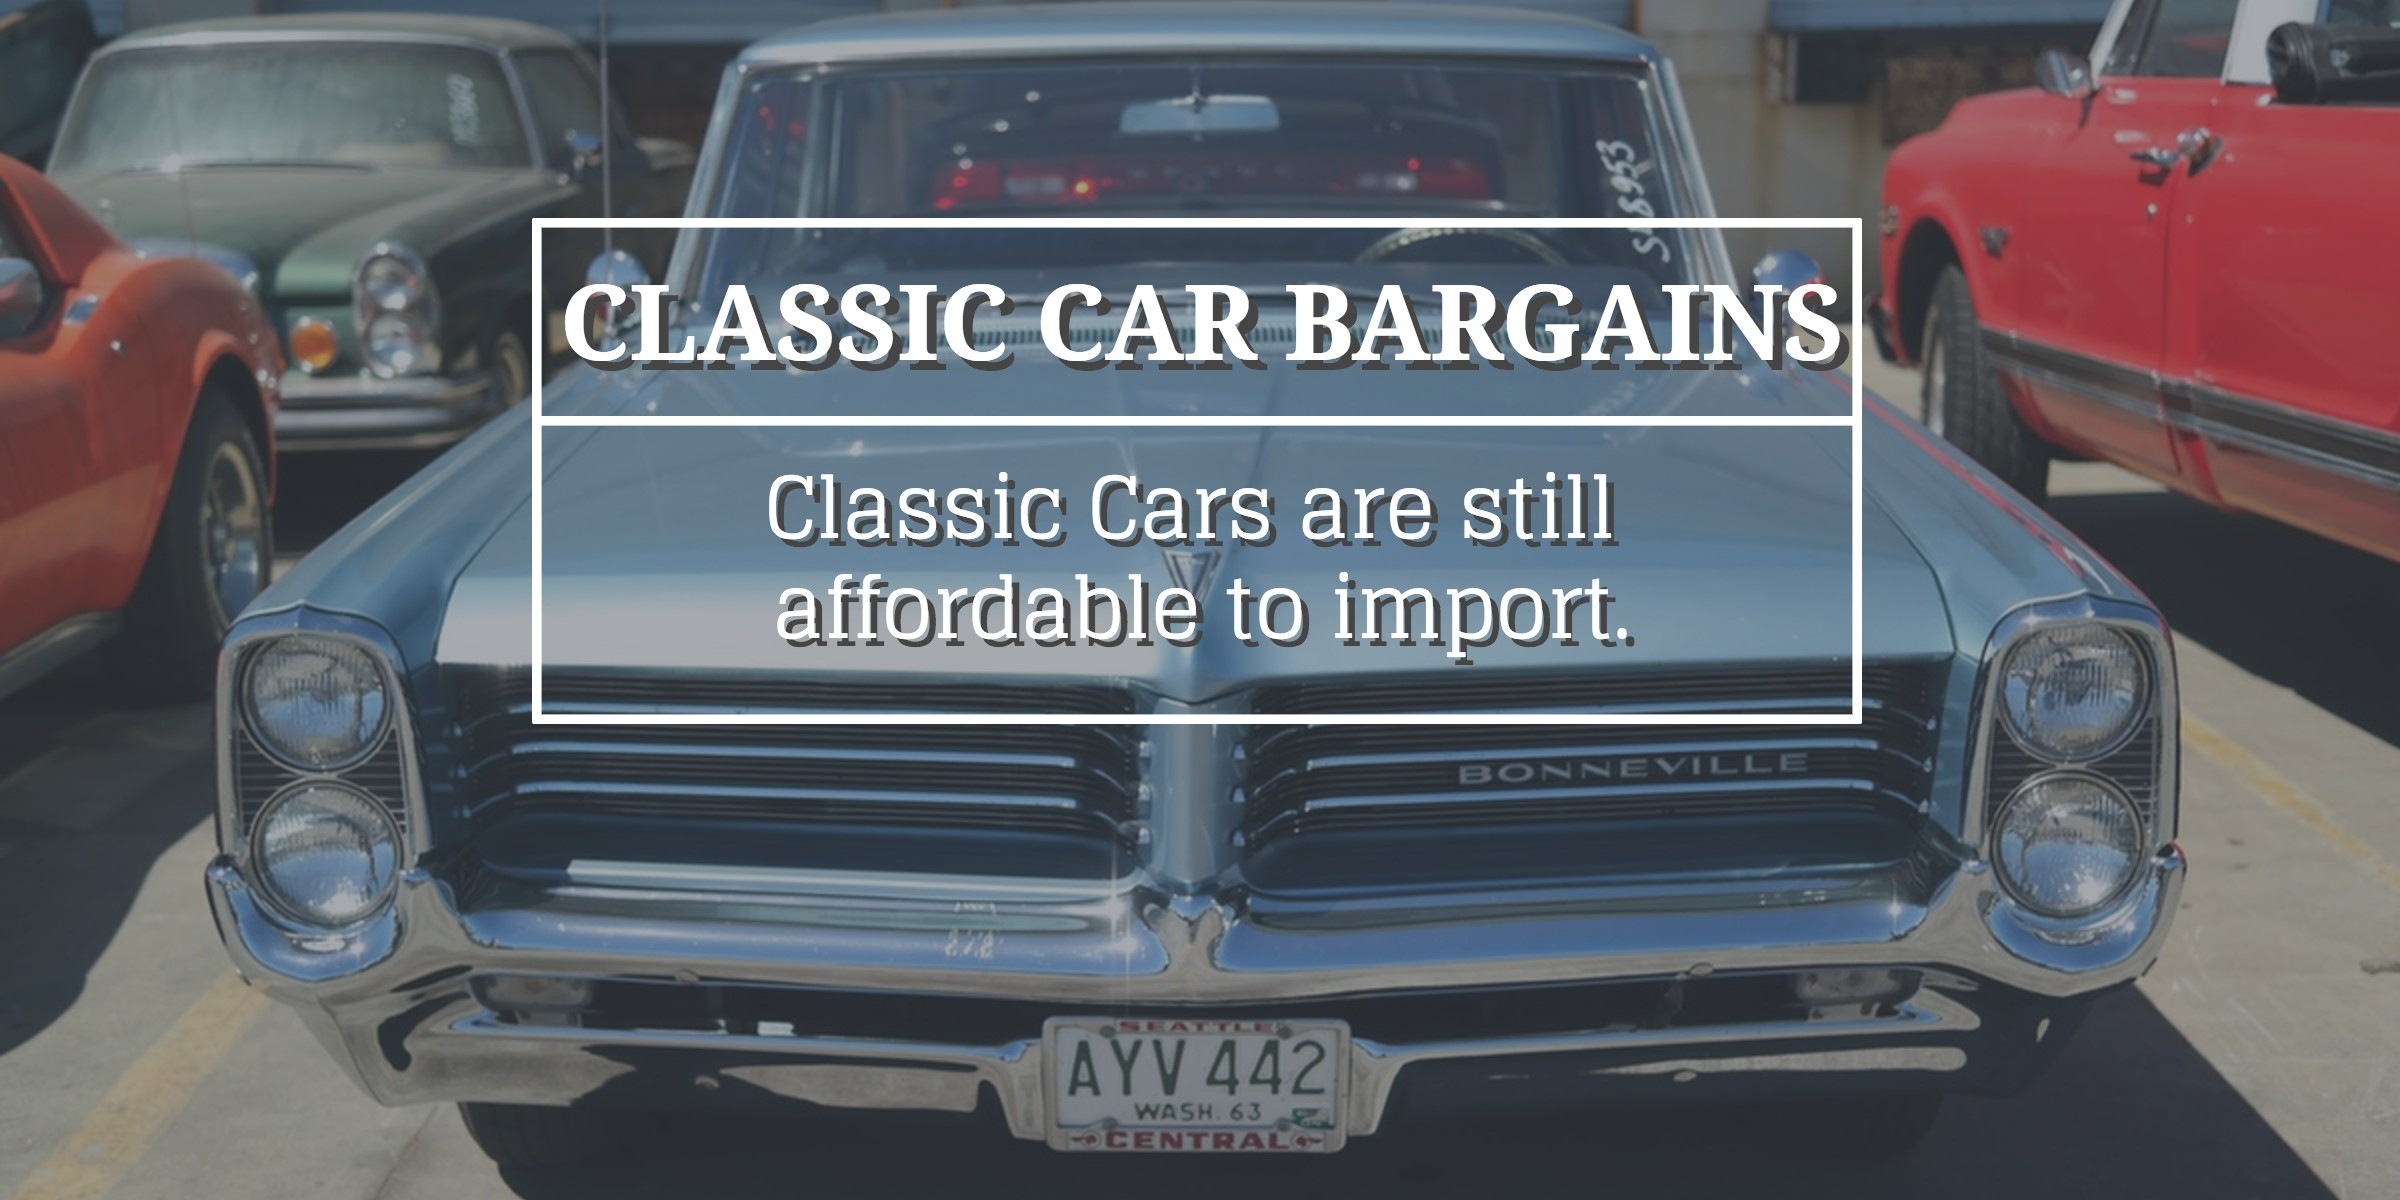 Bargain classic cars from the USA still exist